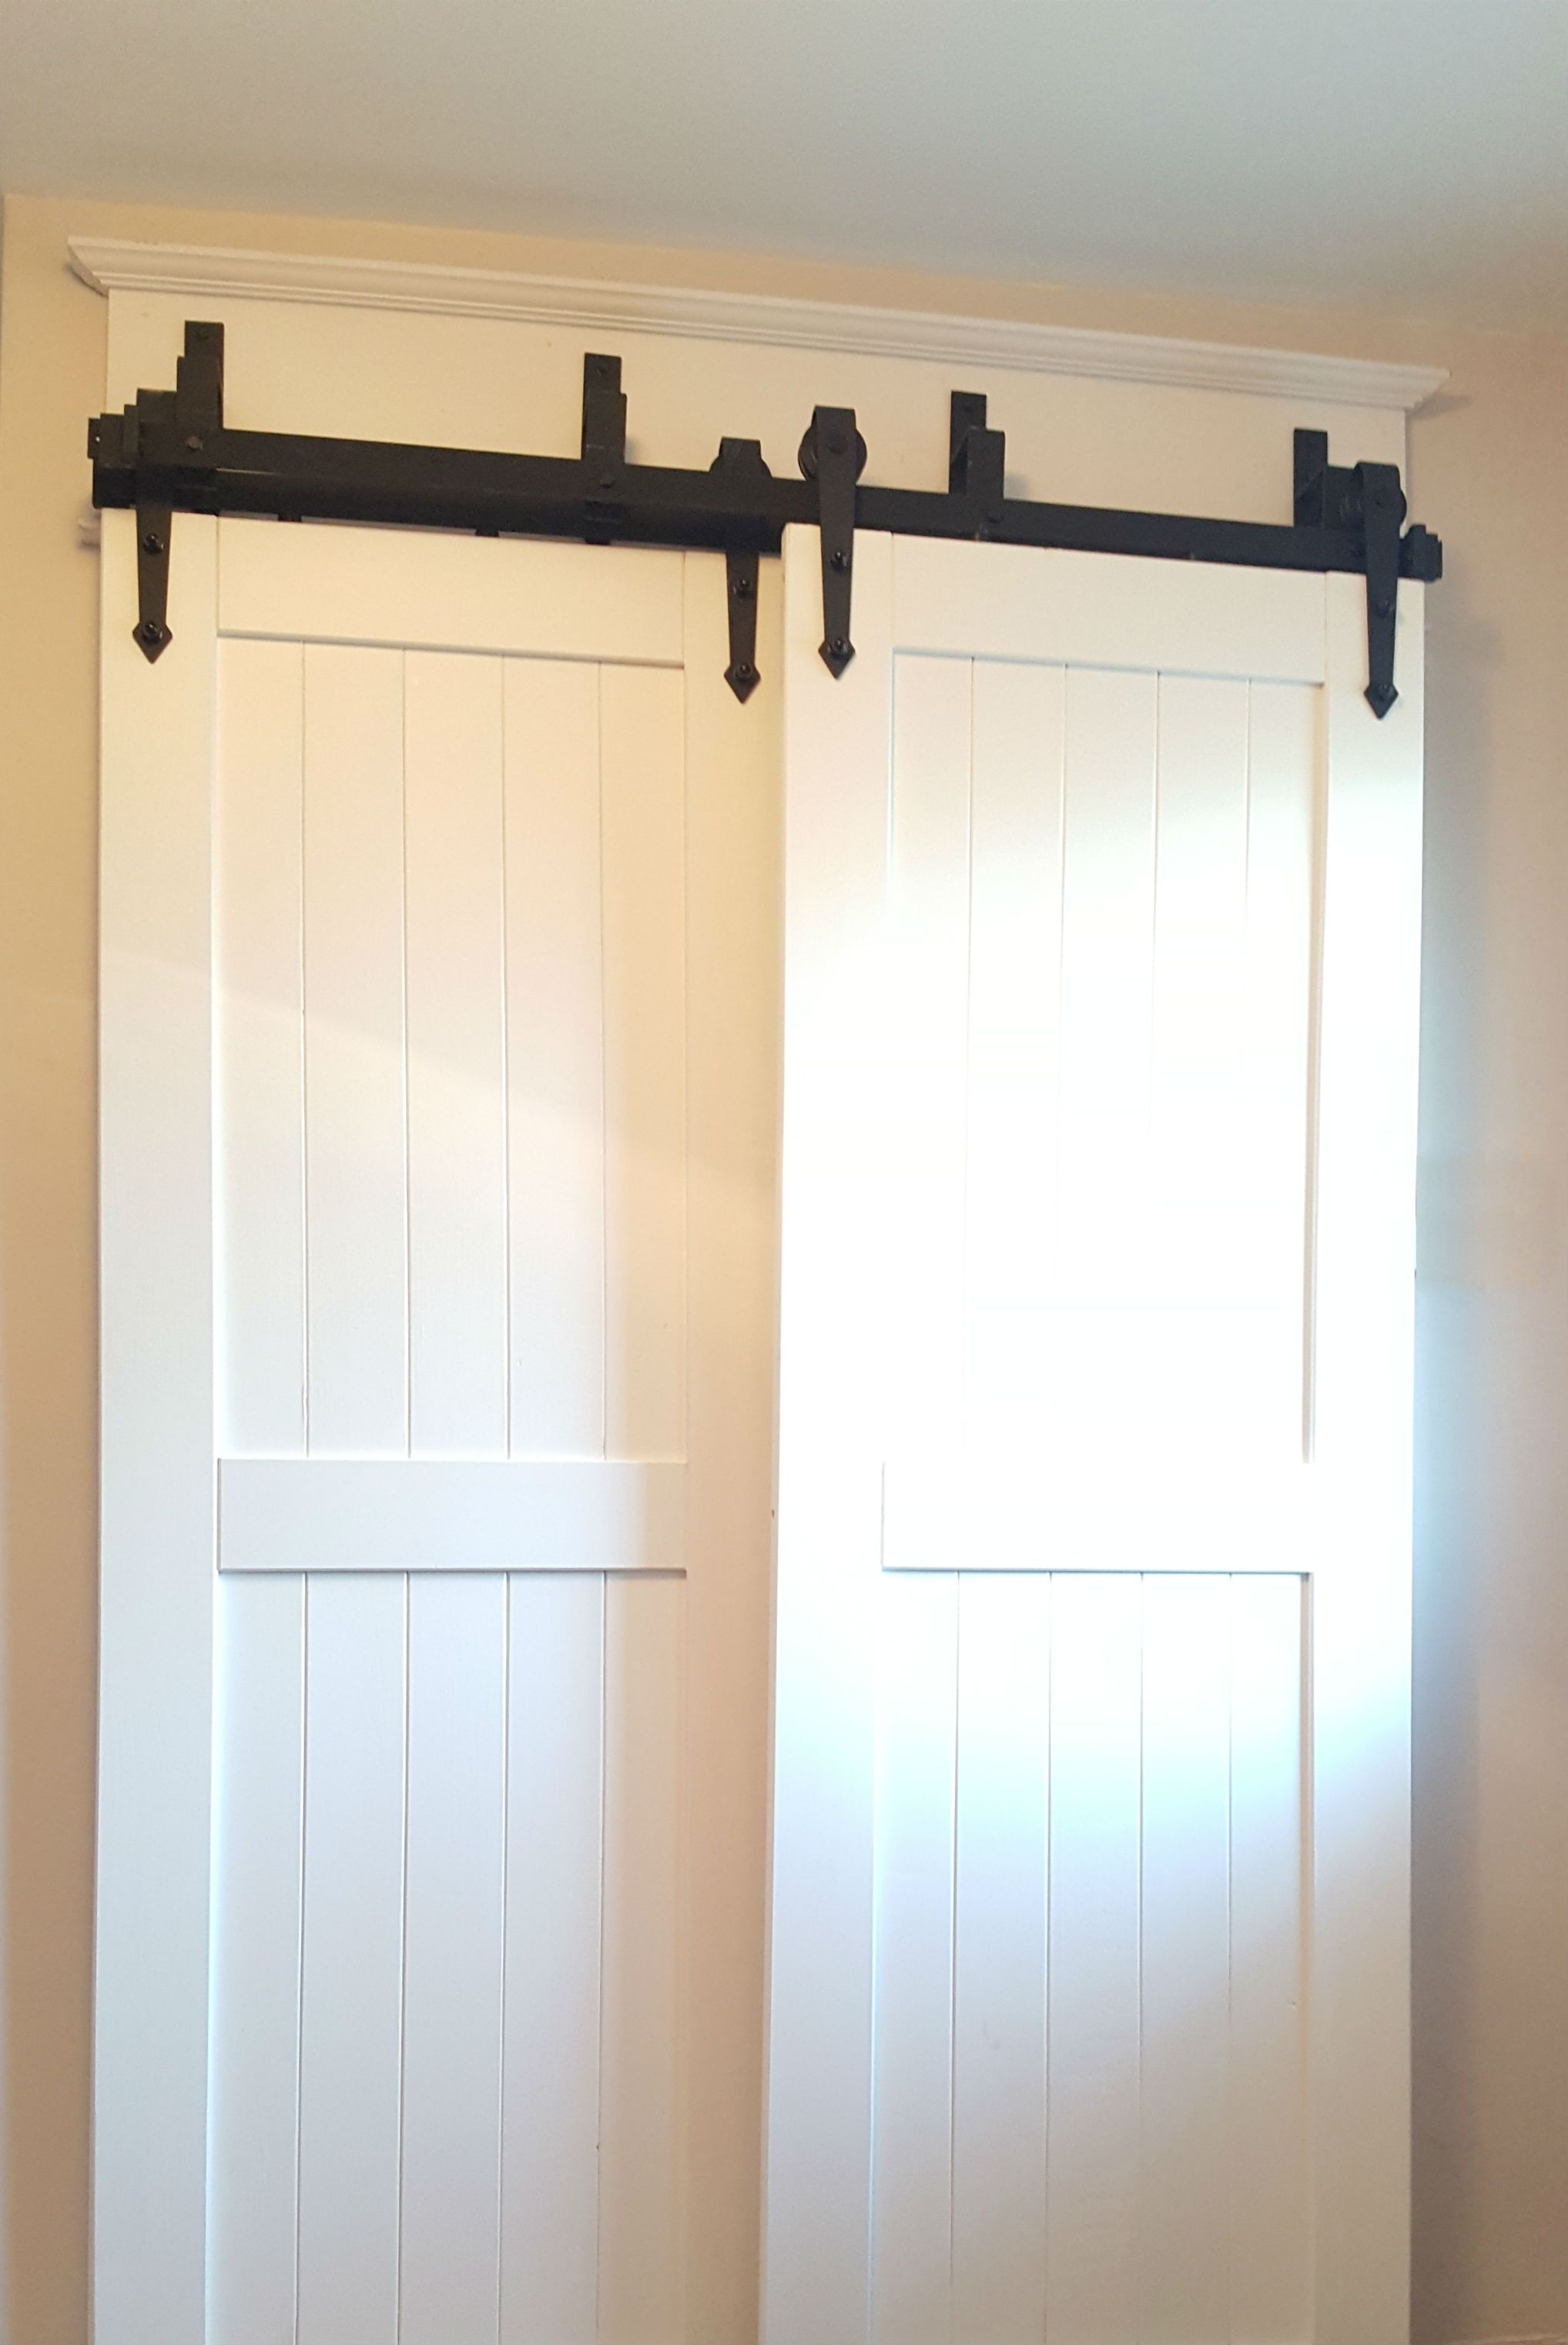 Bypass Barn Door Hardware Easy To Install Canada Hanging